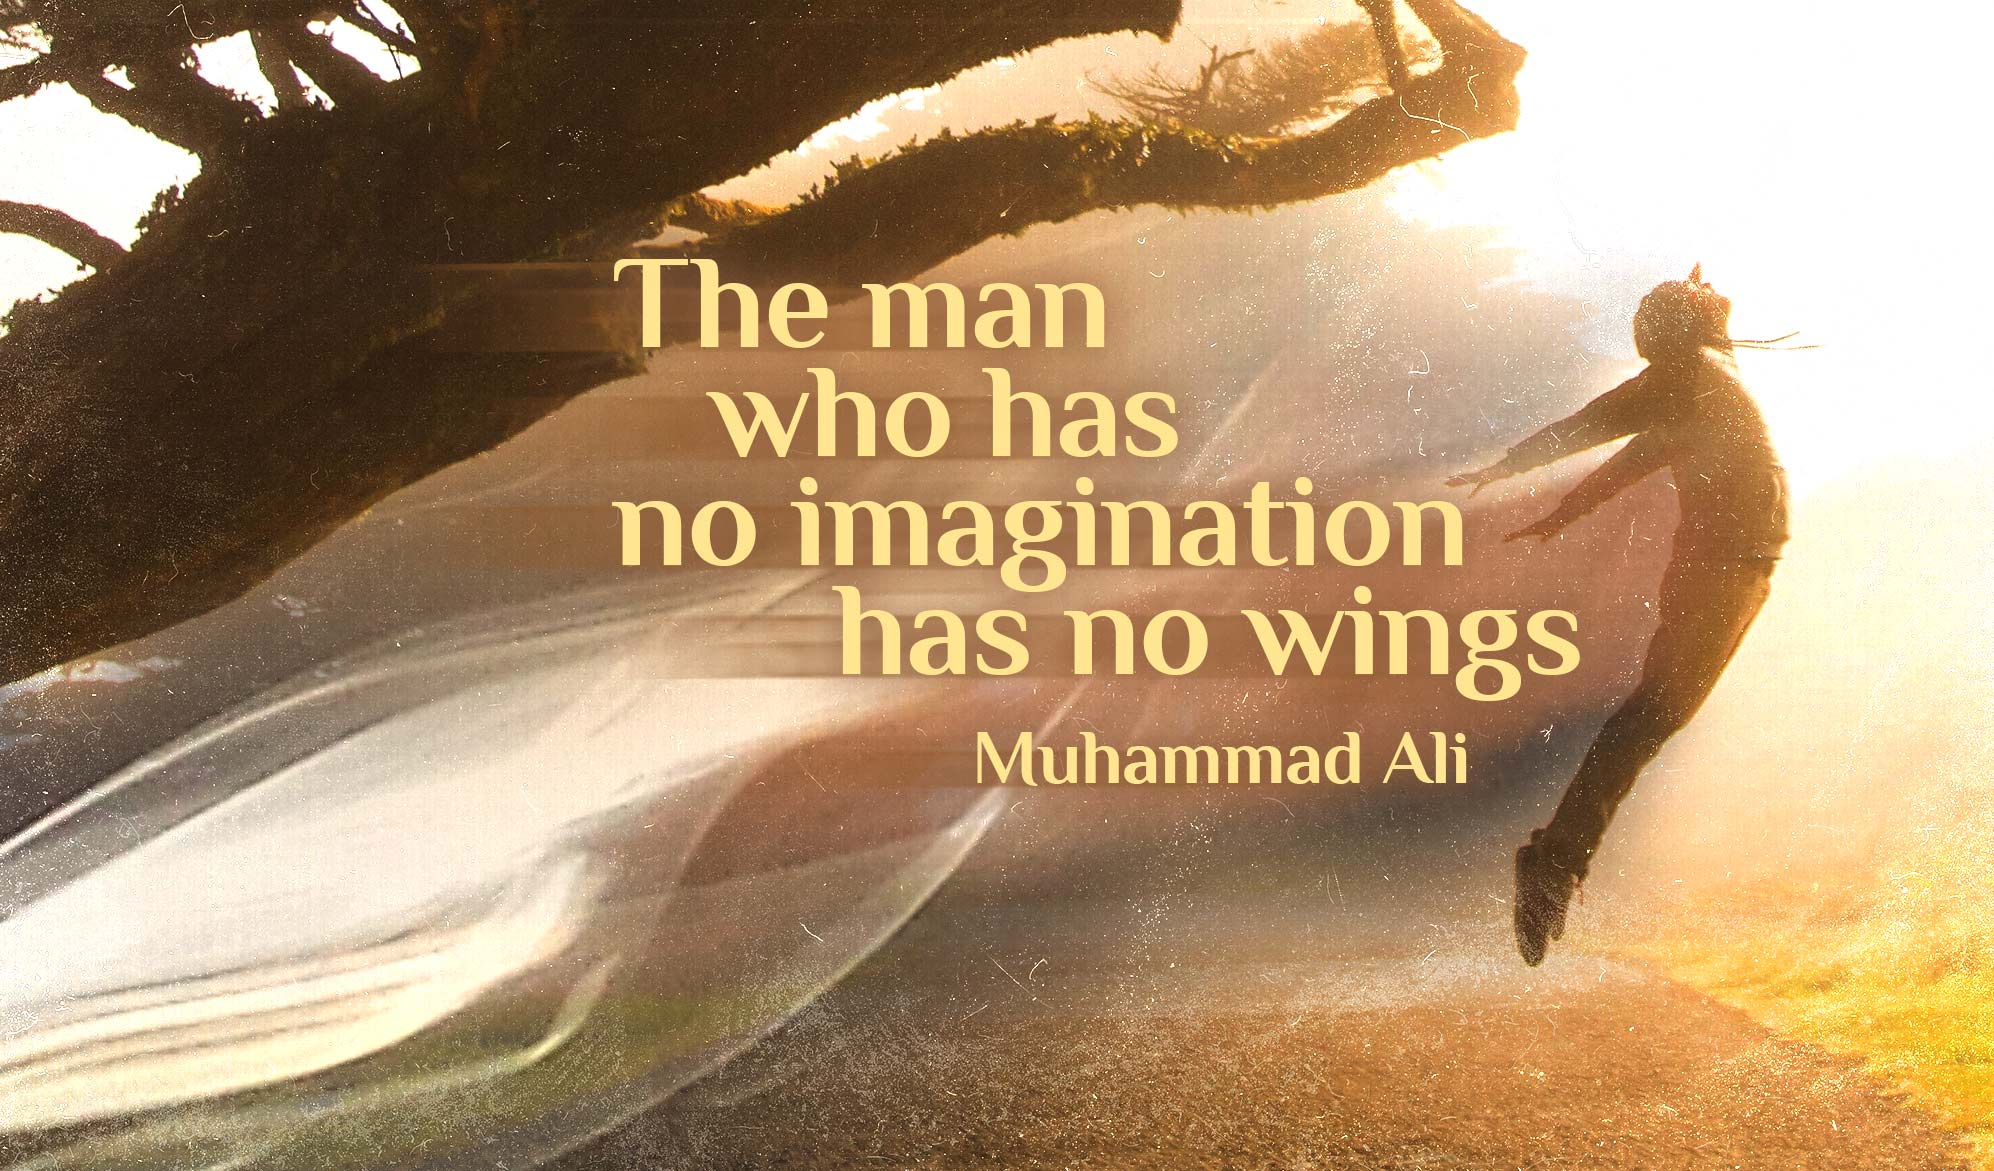 daily inspirational quote image: a man jumping while arching his back below a tree, during the golden hour